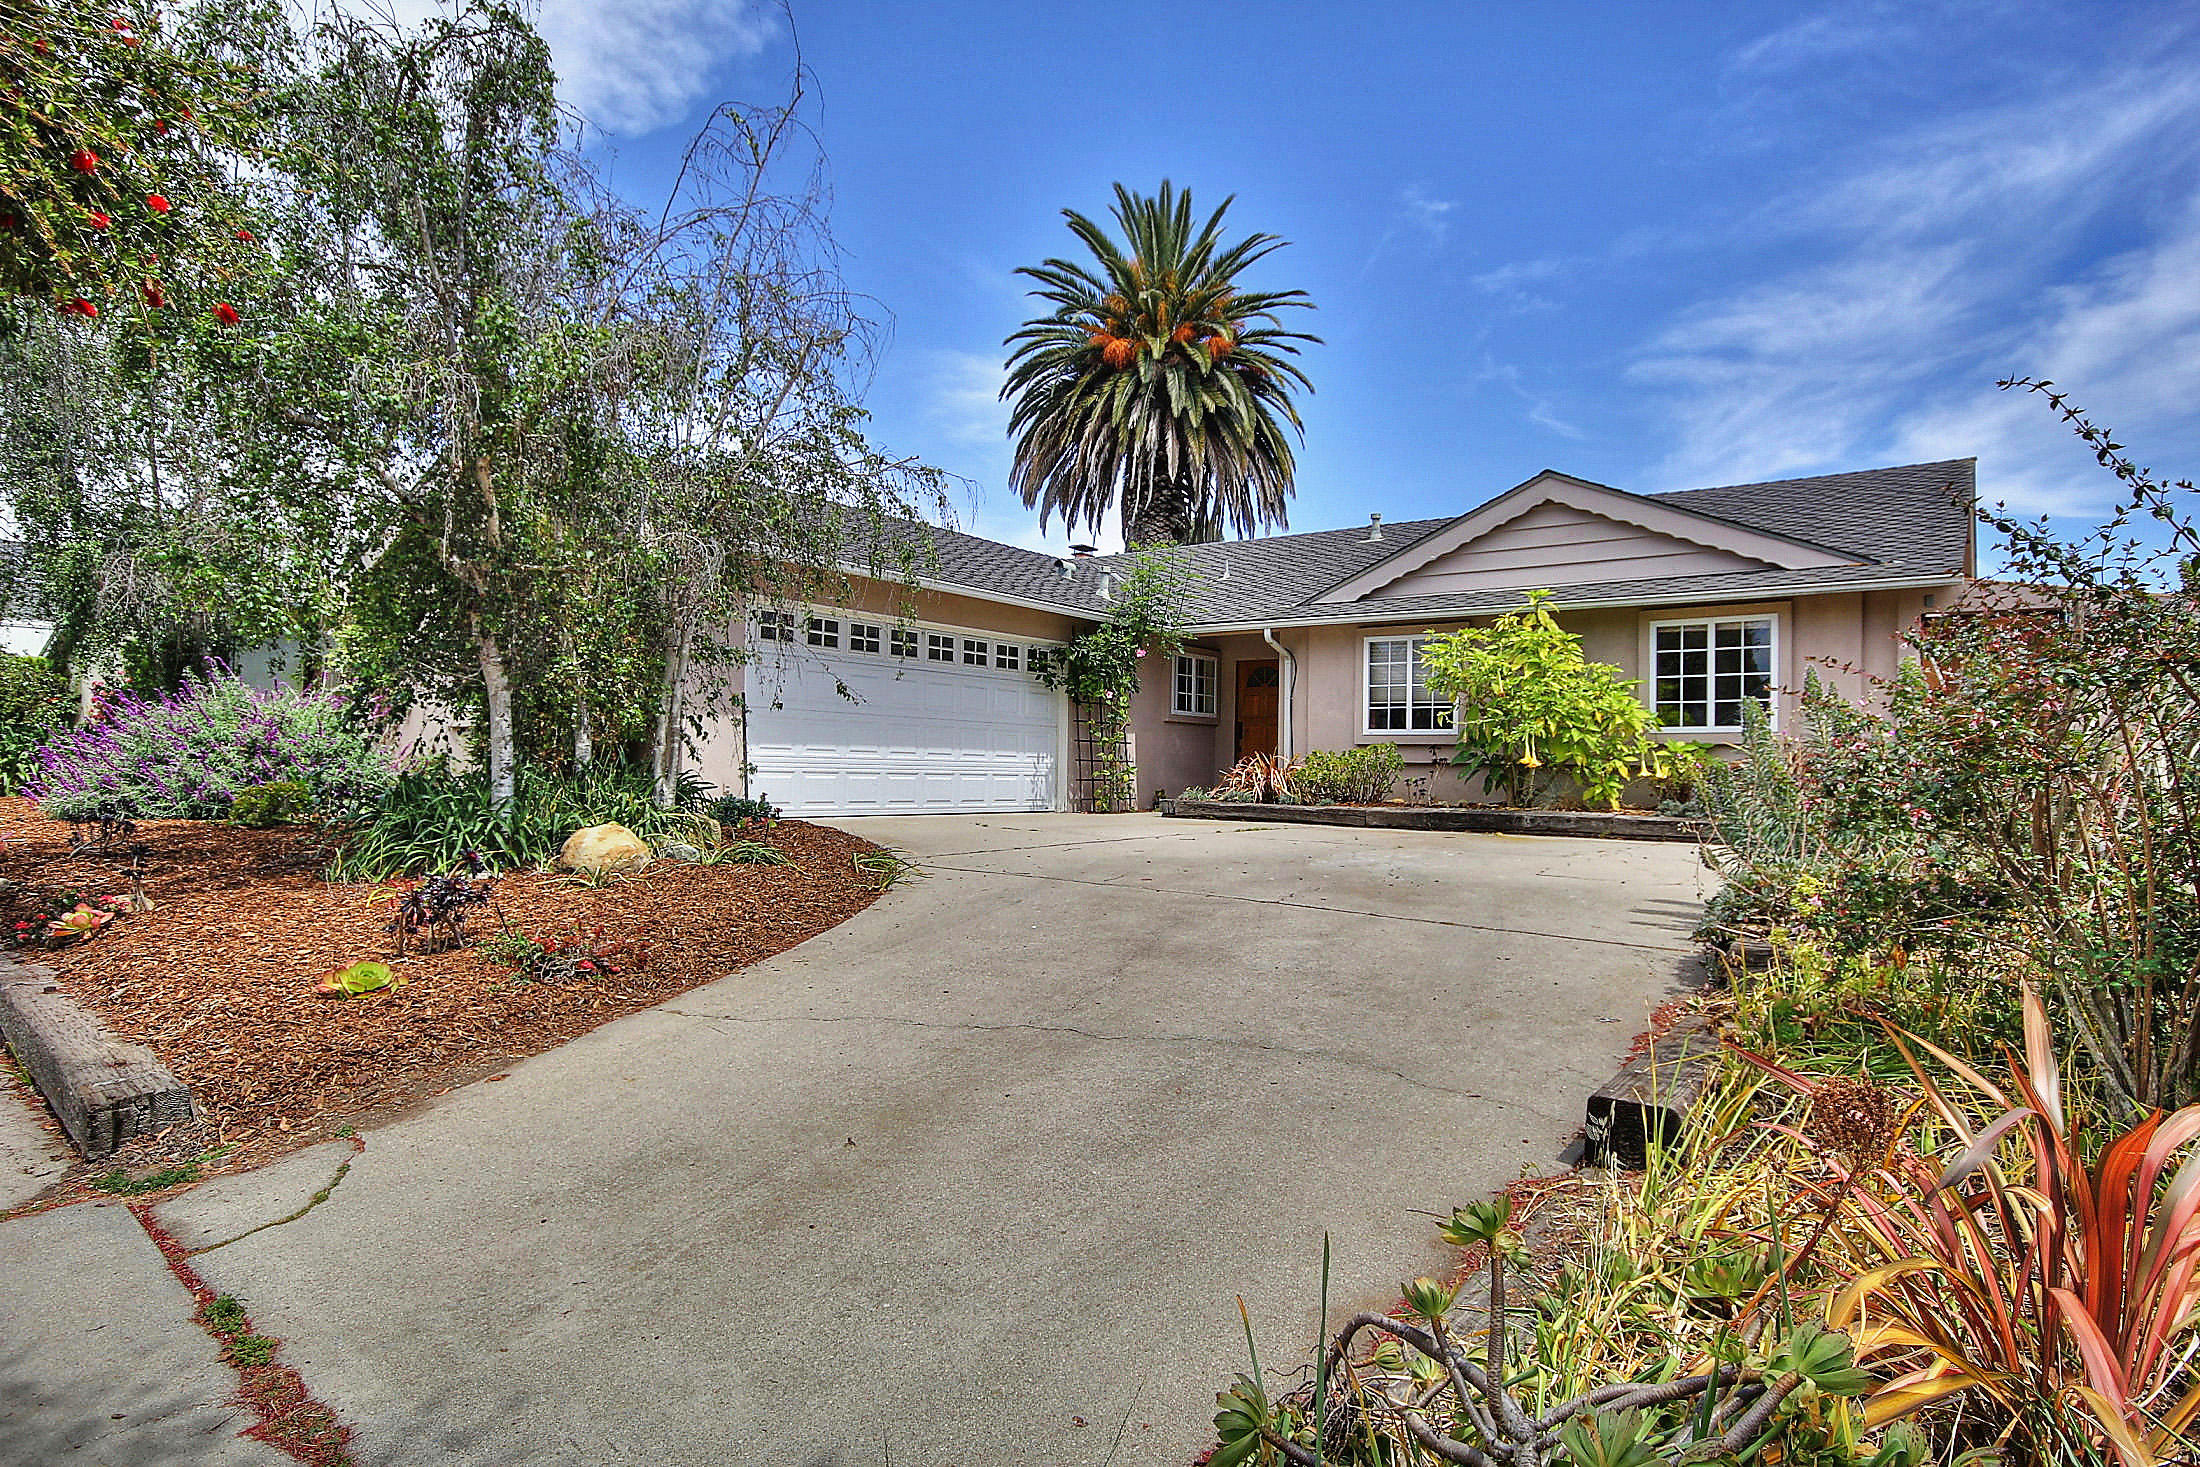 Property photo for 212 Fir Tree Pl Goleta, California 93117 - 15-1472